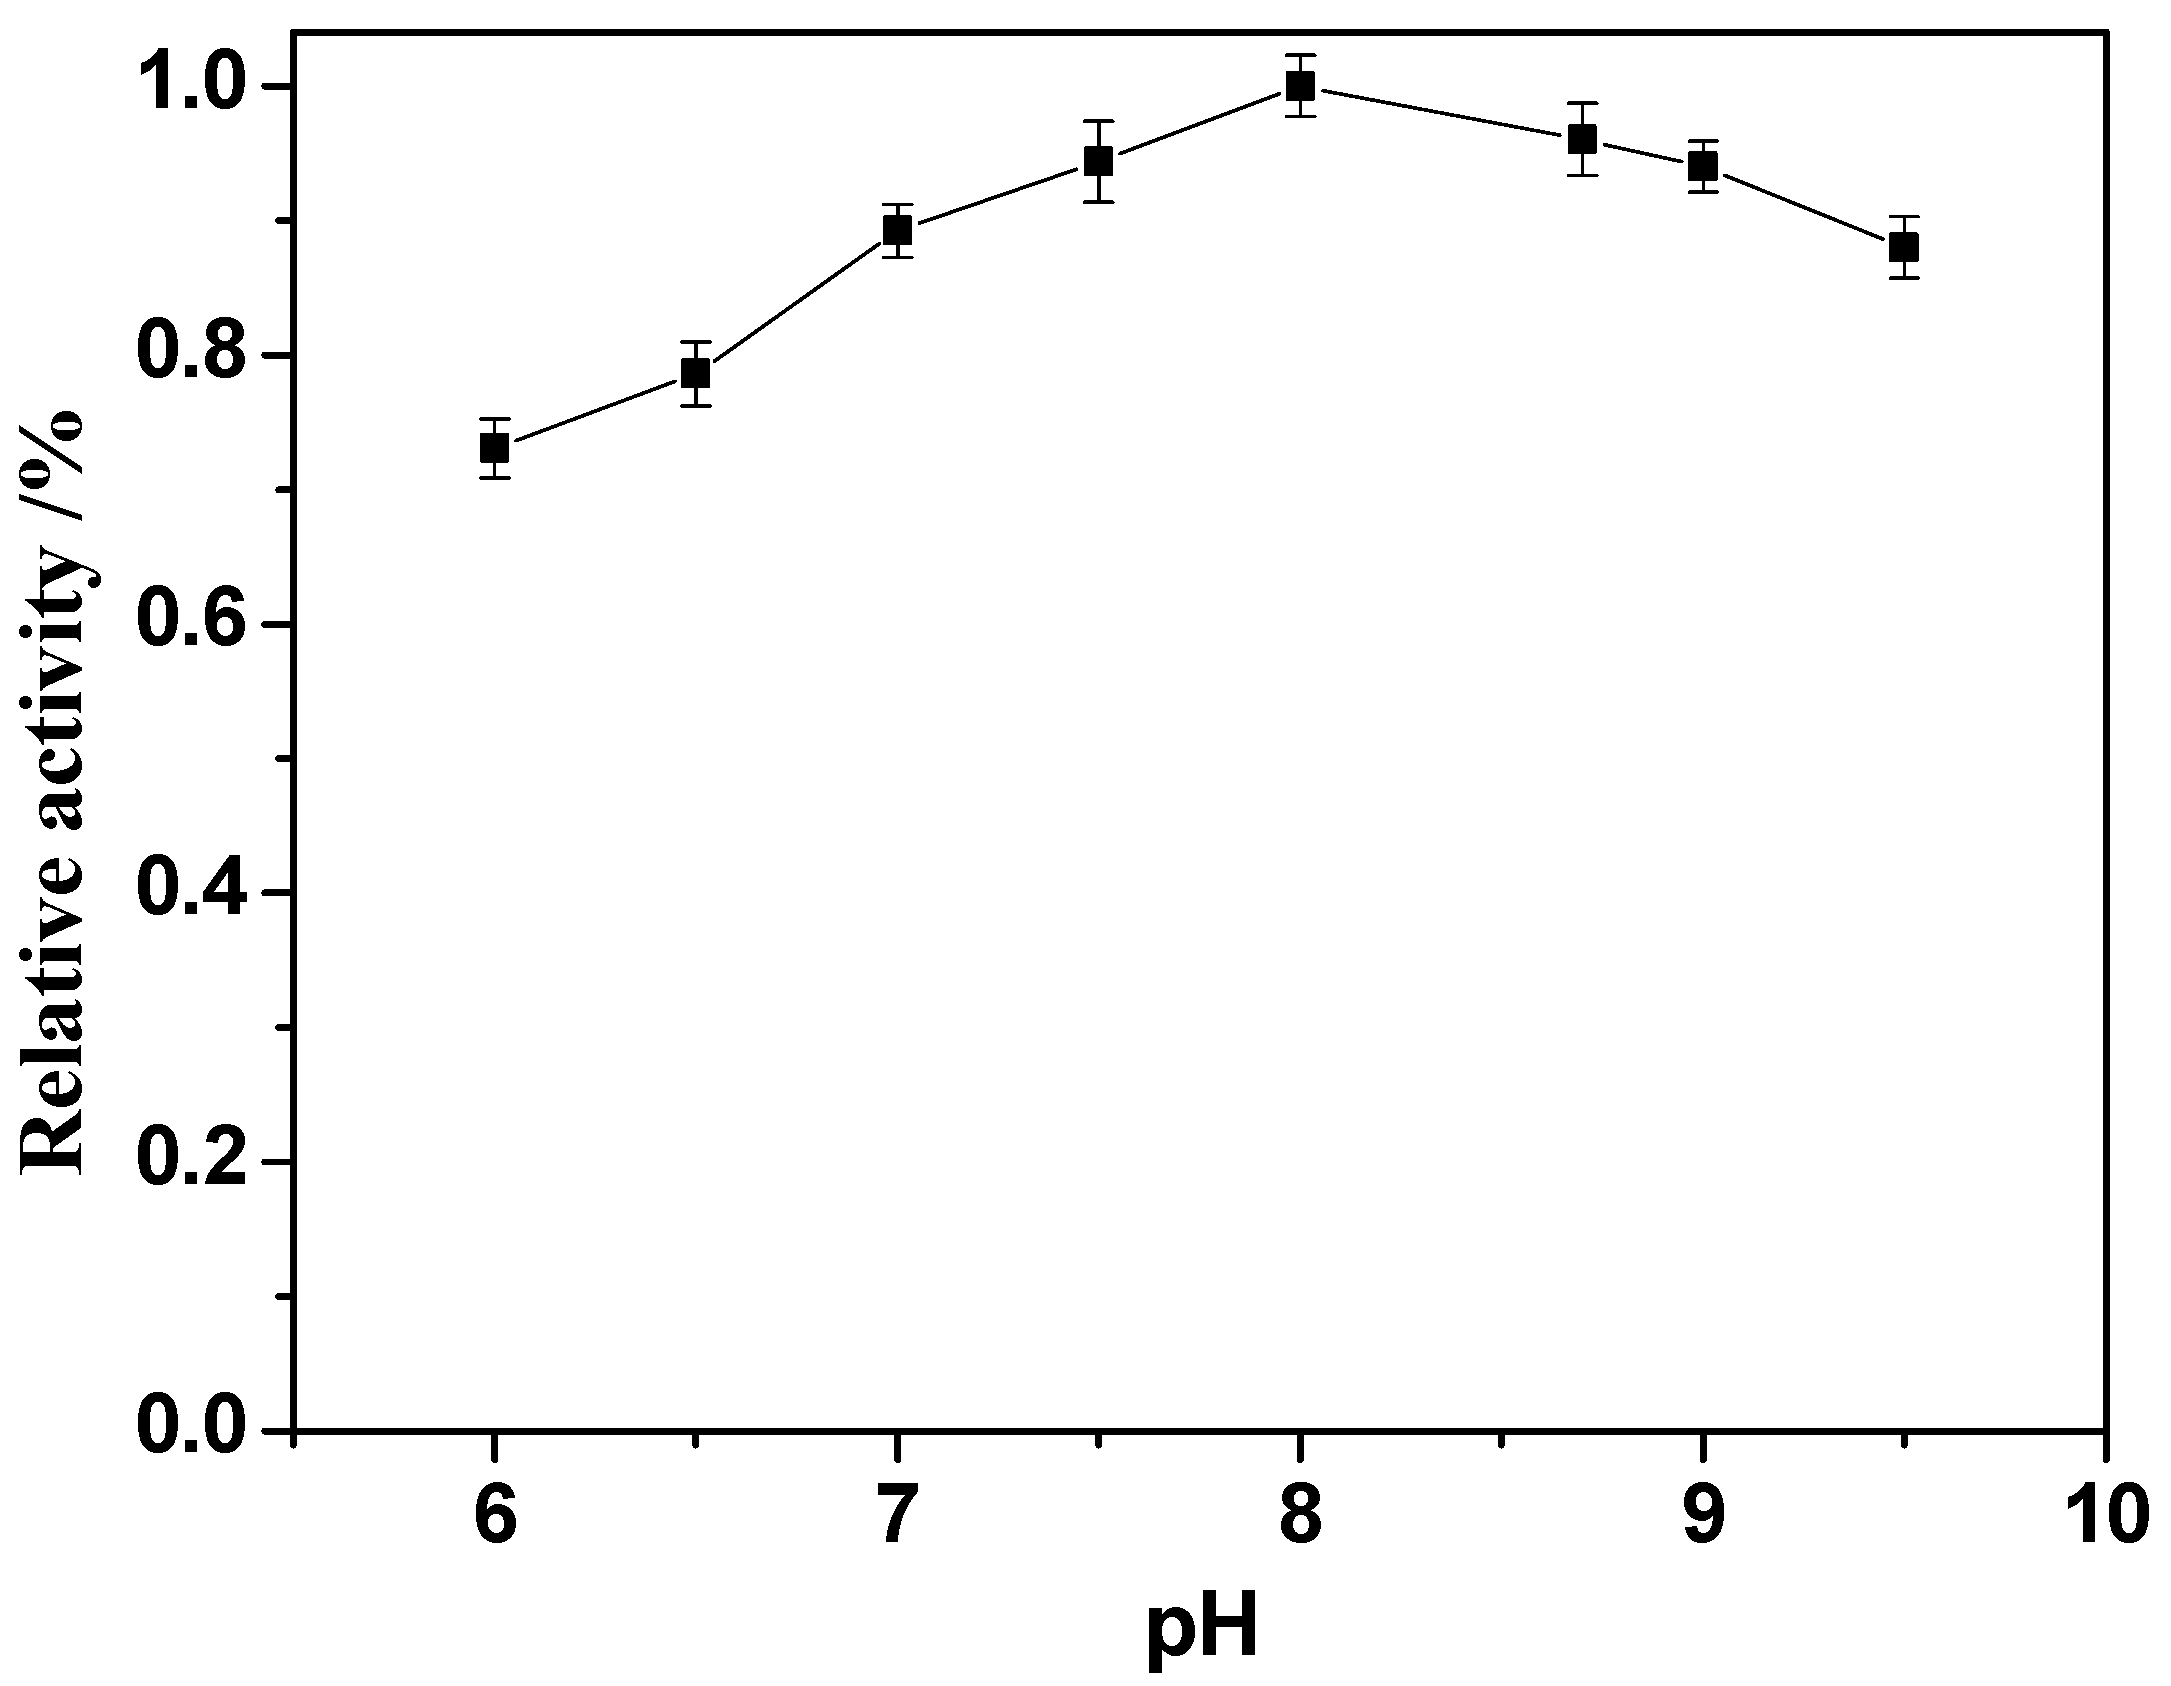 a study of the effects of varying temperature on the horseradish peroxidase enzyme Detailed circular dichroism and fluorescence studies at different phs have been carried out to monitor thermal unfolding of horseradish peroxidase isoenzyme c (hrpc) the change in cd in the 222 nm region corresponds to changes in the overall secondary structure of the enzyme, while that in the 400 nm region (soret region) corresponds to.